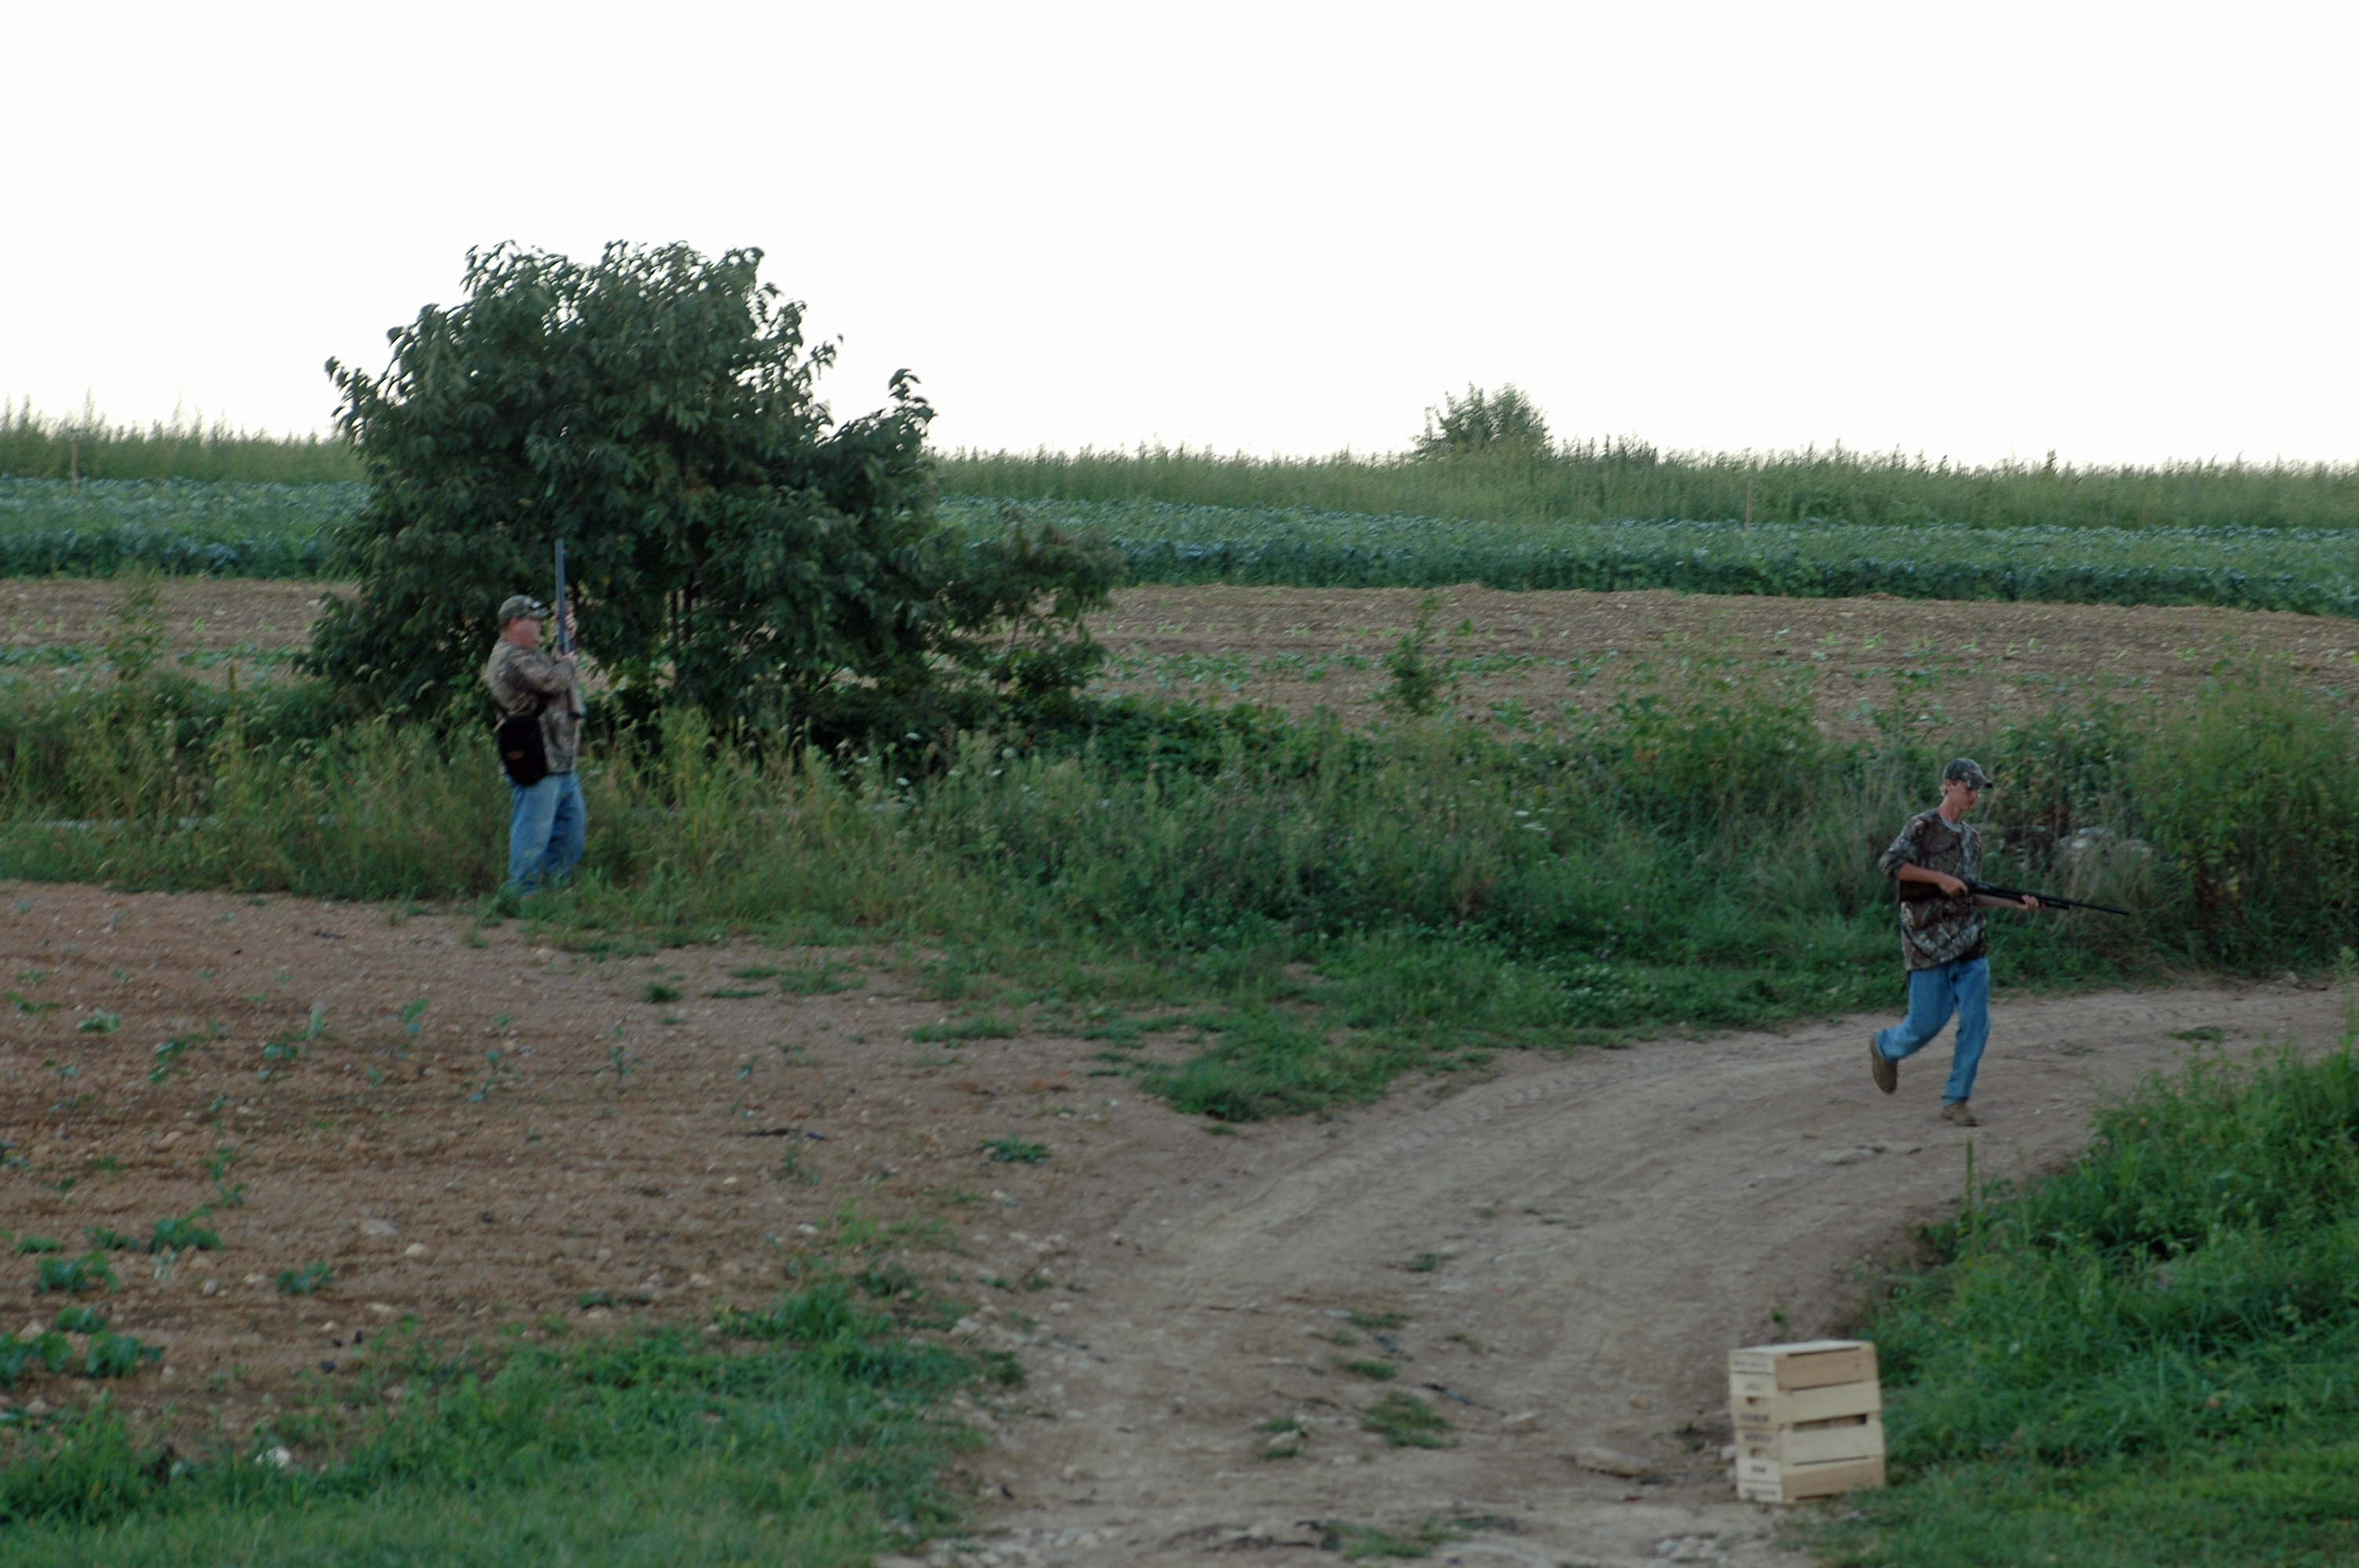 Florida public dove hunting fields the best dove 2017 for Illinois fishing regulations 2017